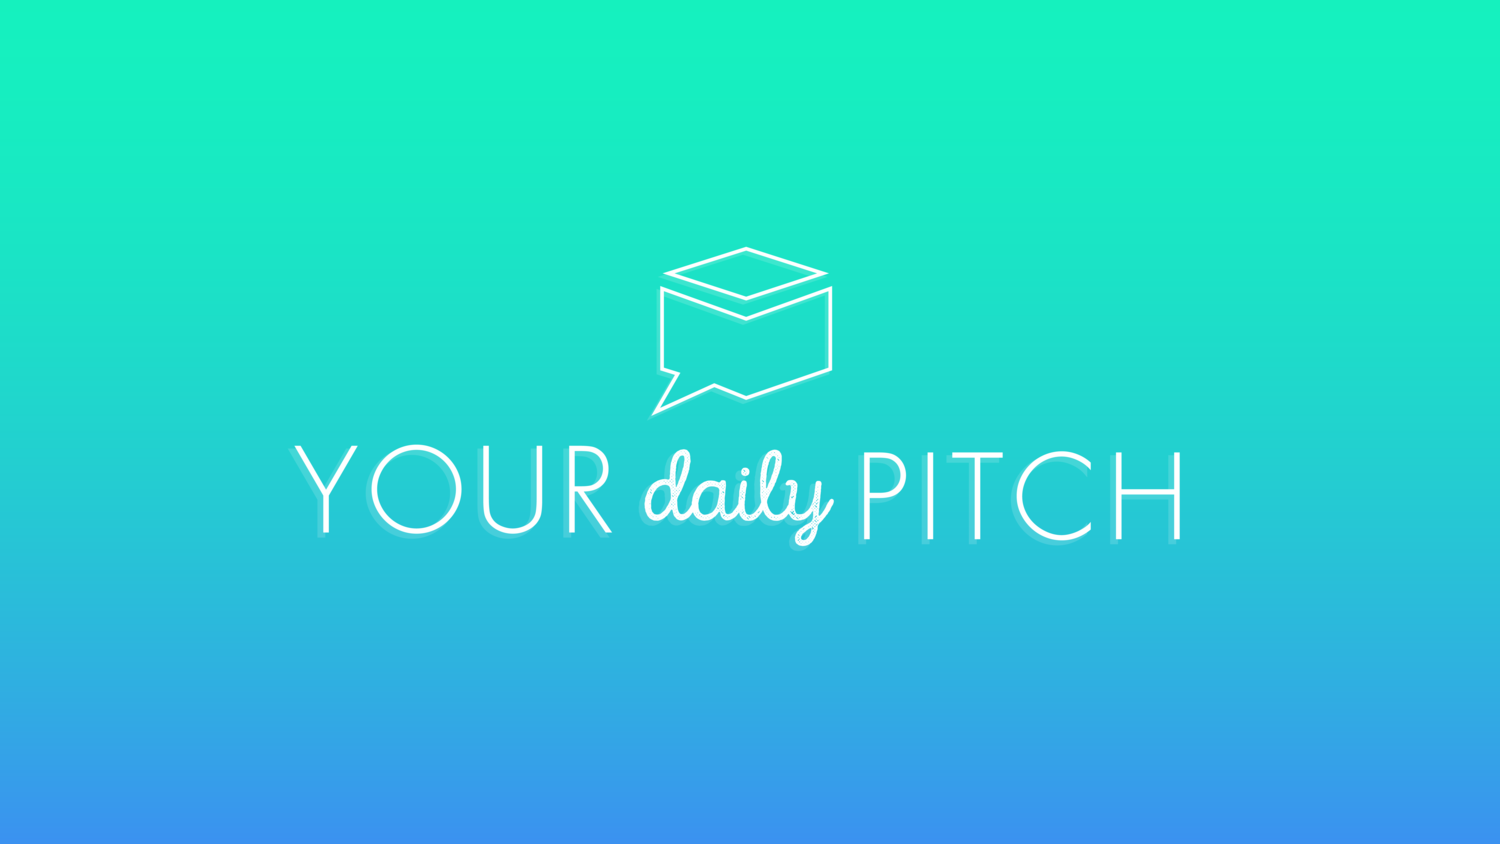 The Daily Pitch